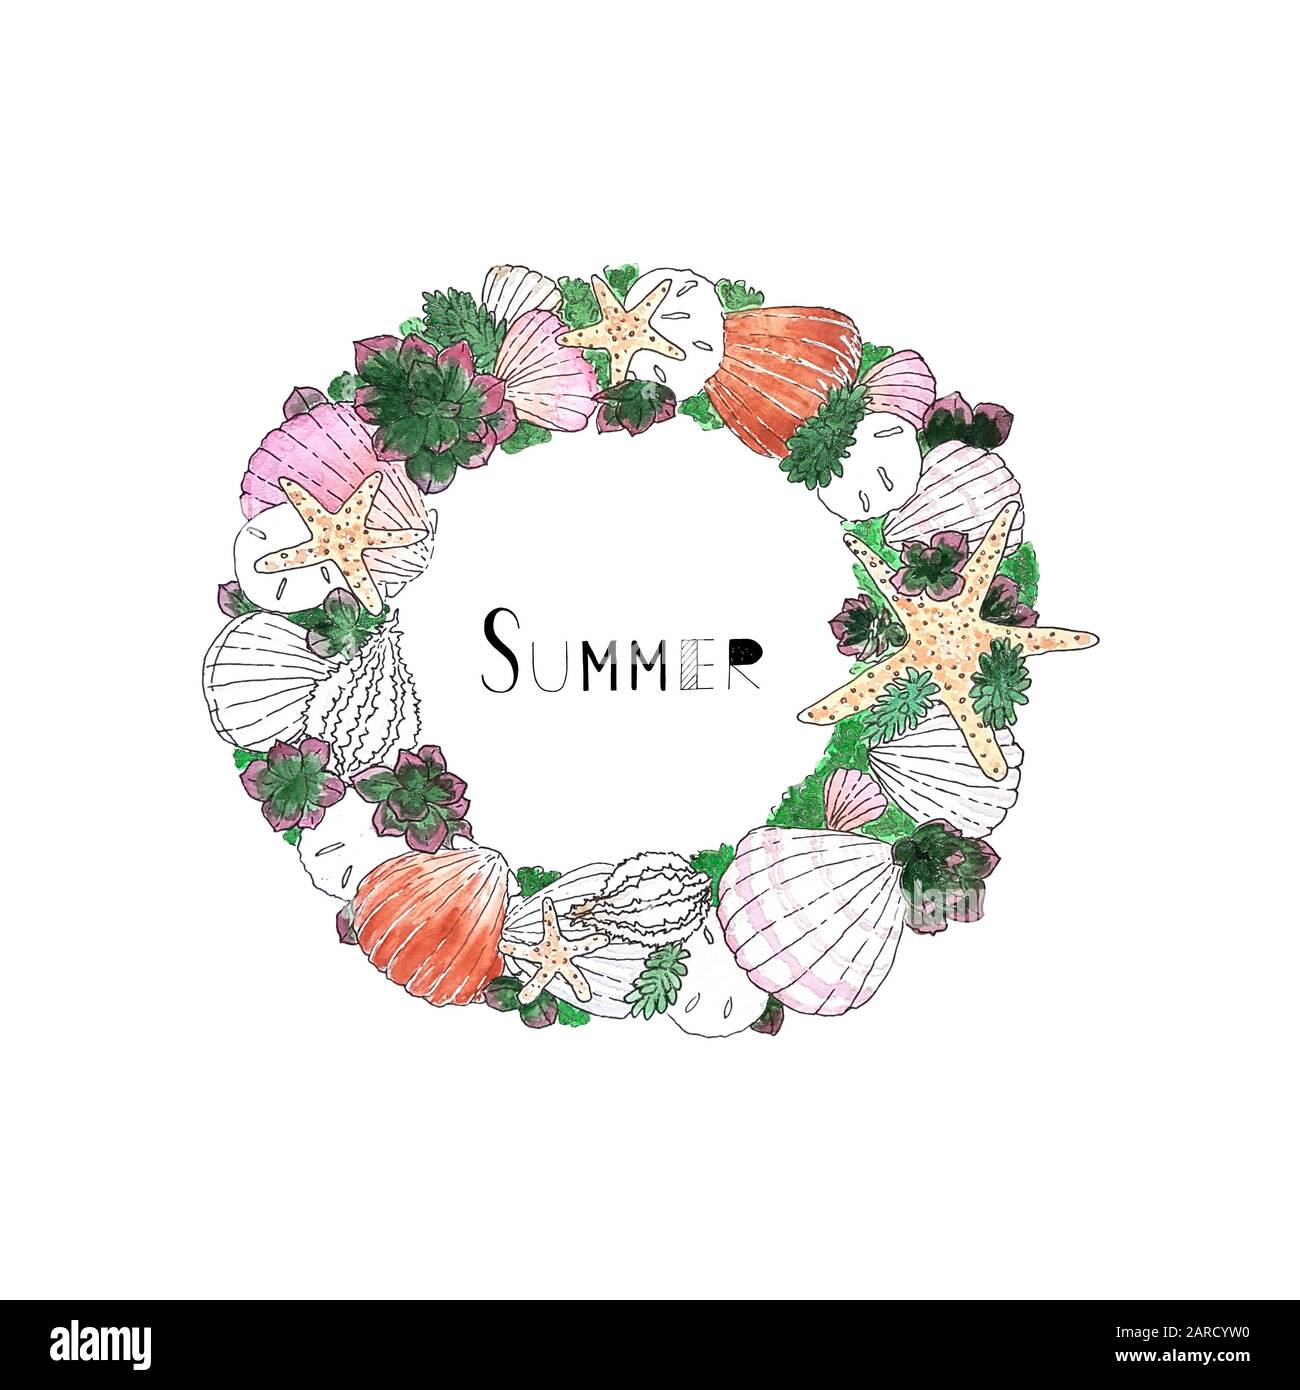 Watercolor Seashell Succulent Wreath With Summer Text Hand Drawing Sketch Can Be Printed On Textile Wallpaper Wrapping Paper Greeting Cards Children Illustration Etc Stock Photo Alamy